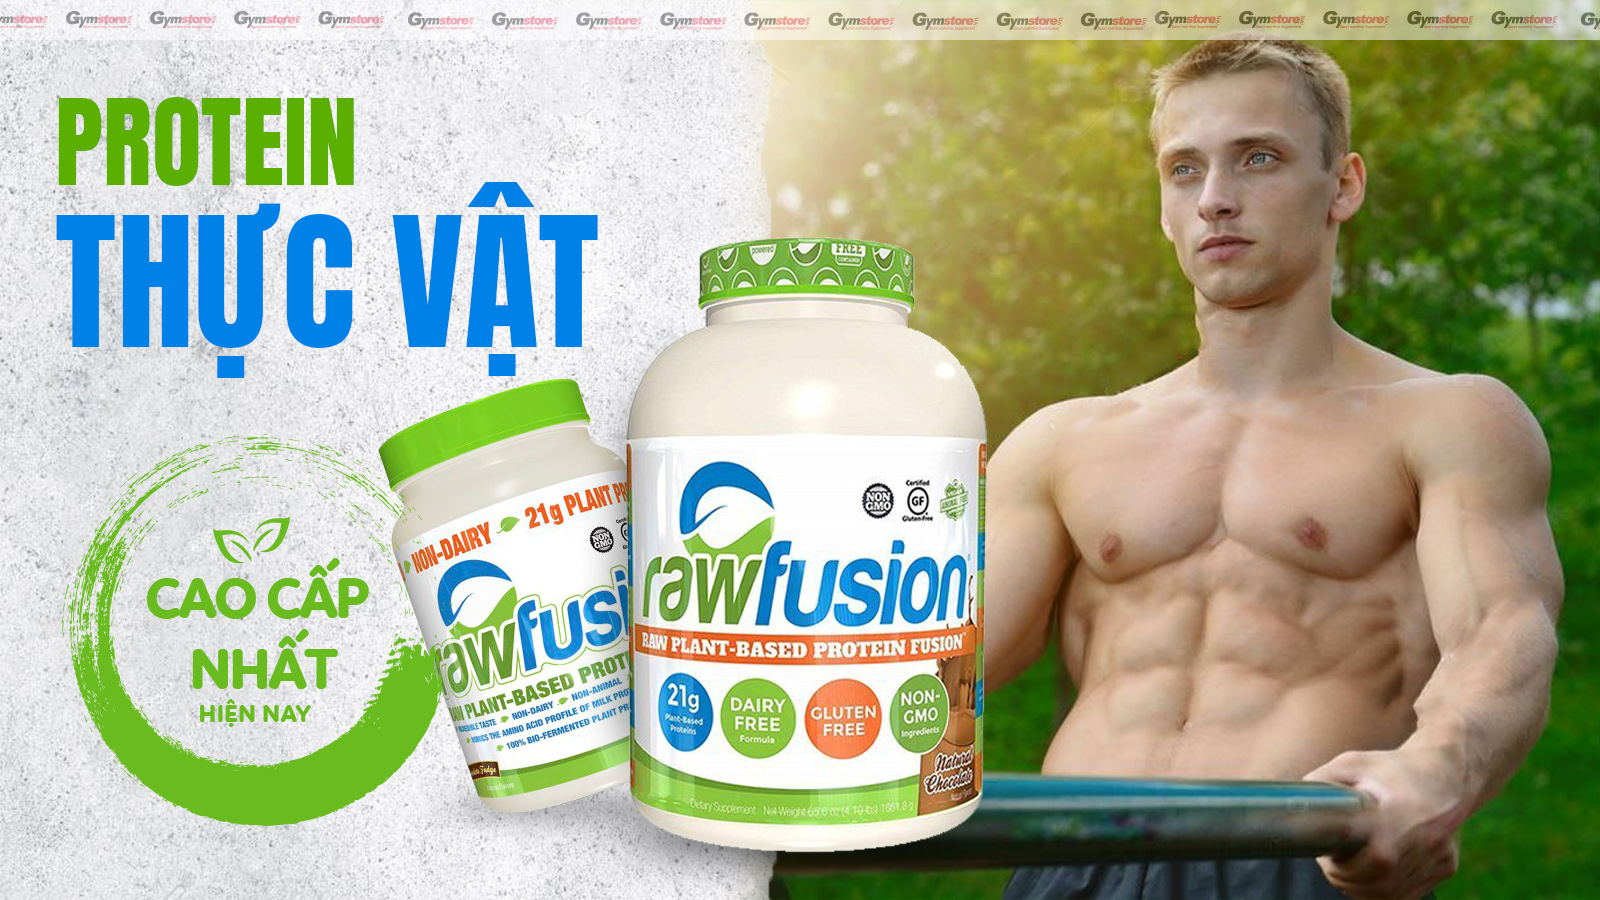 Raw-Fusion-4lbs-Protein-thuc-vat-tot-nhat-gymstore